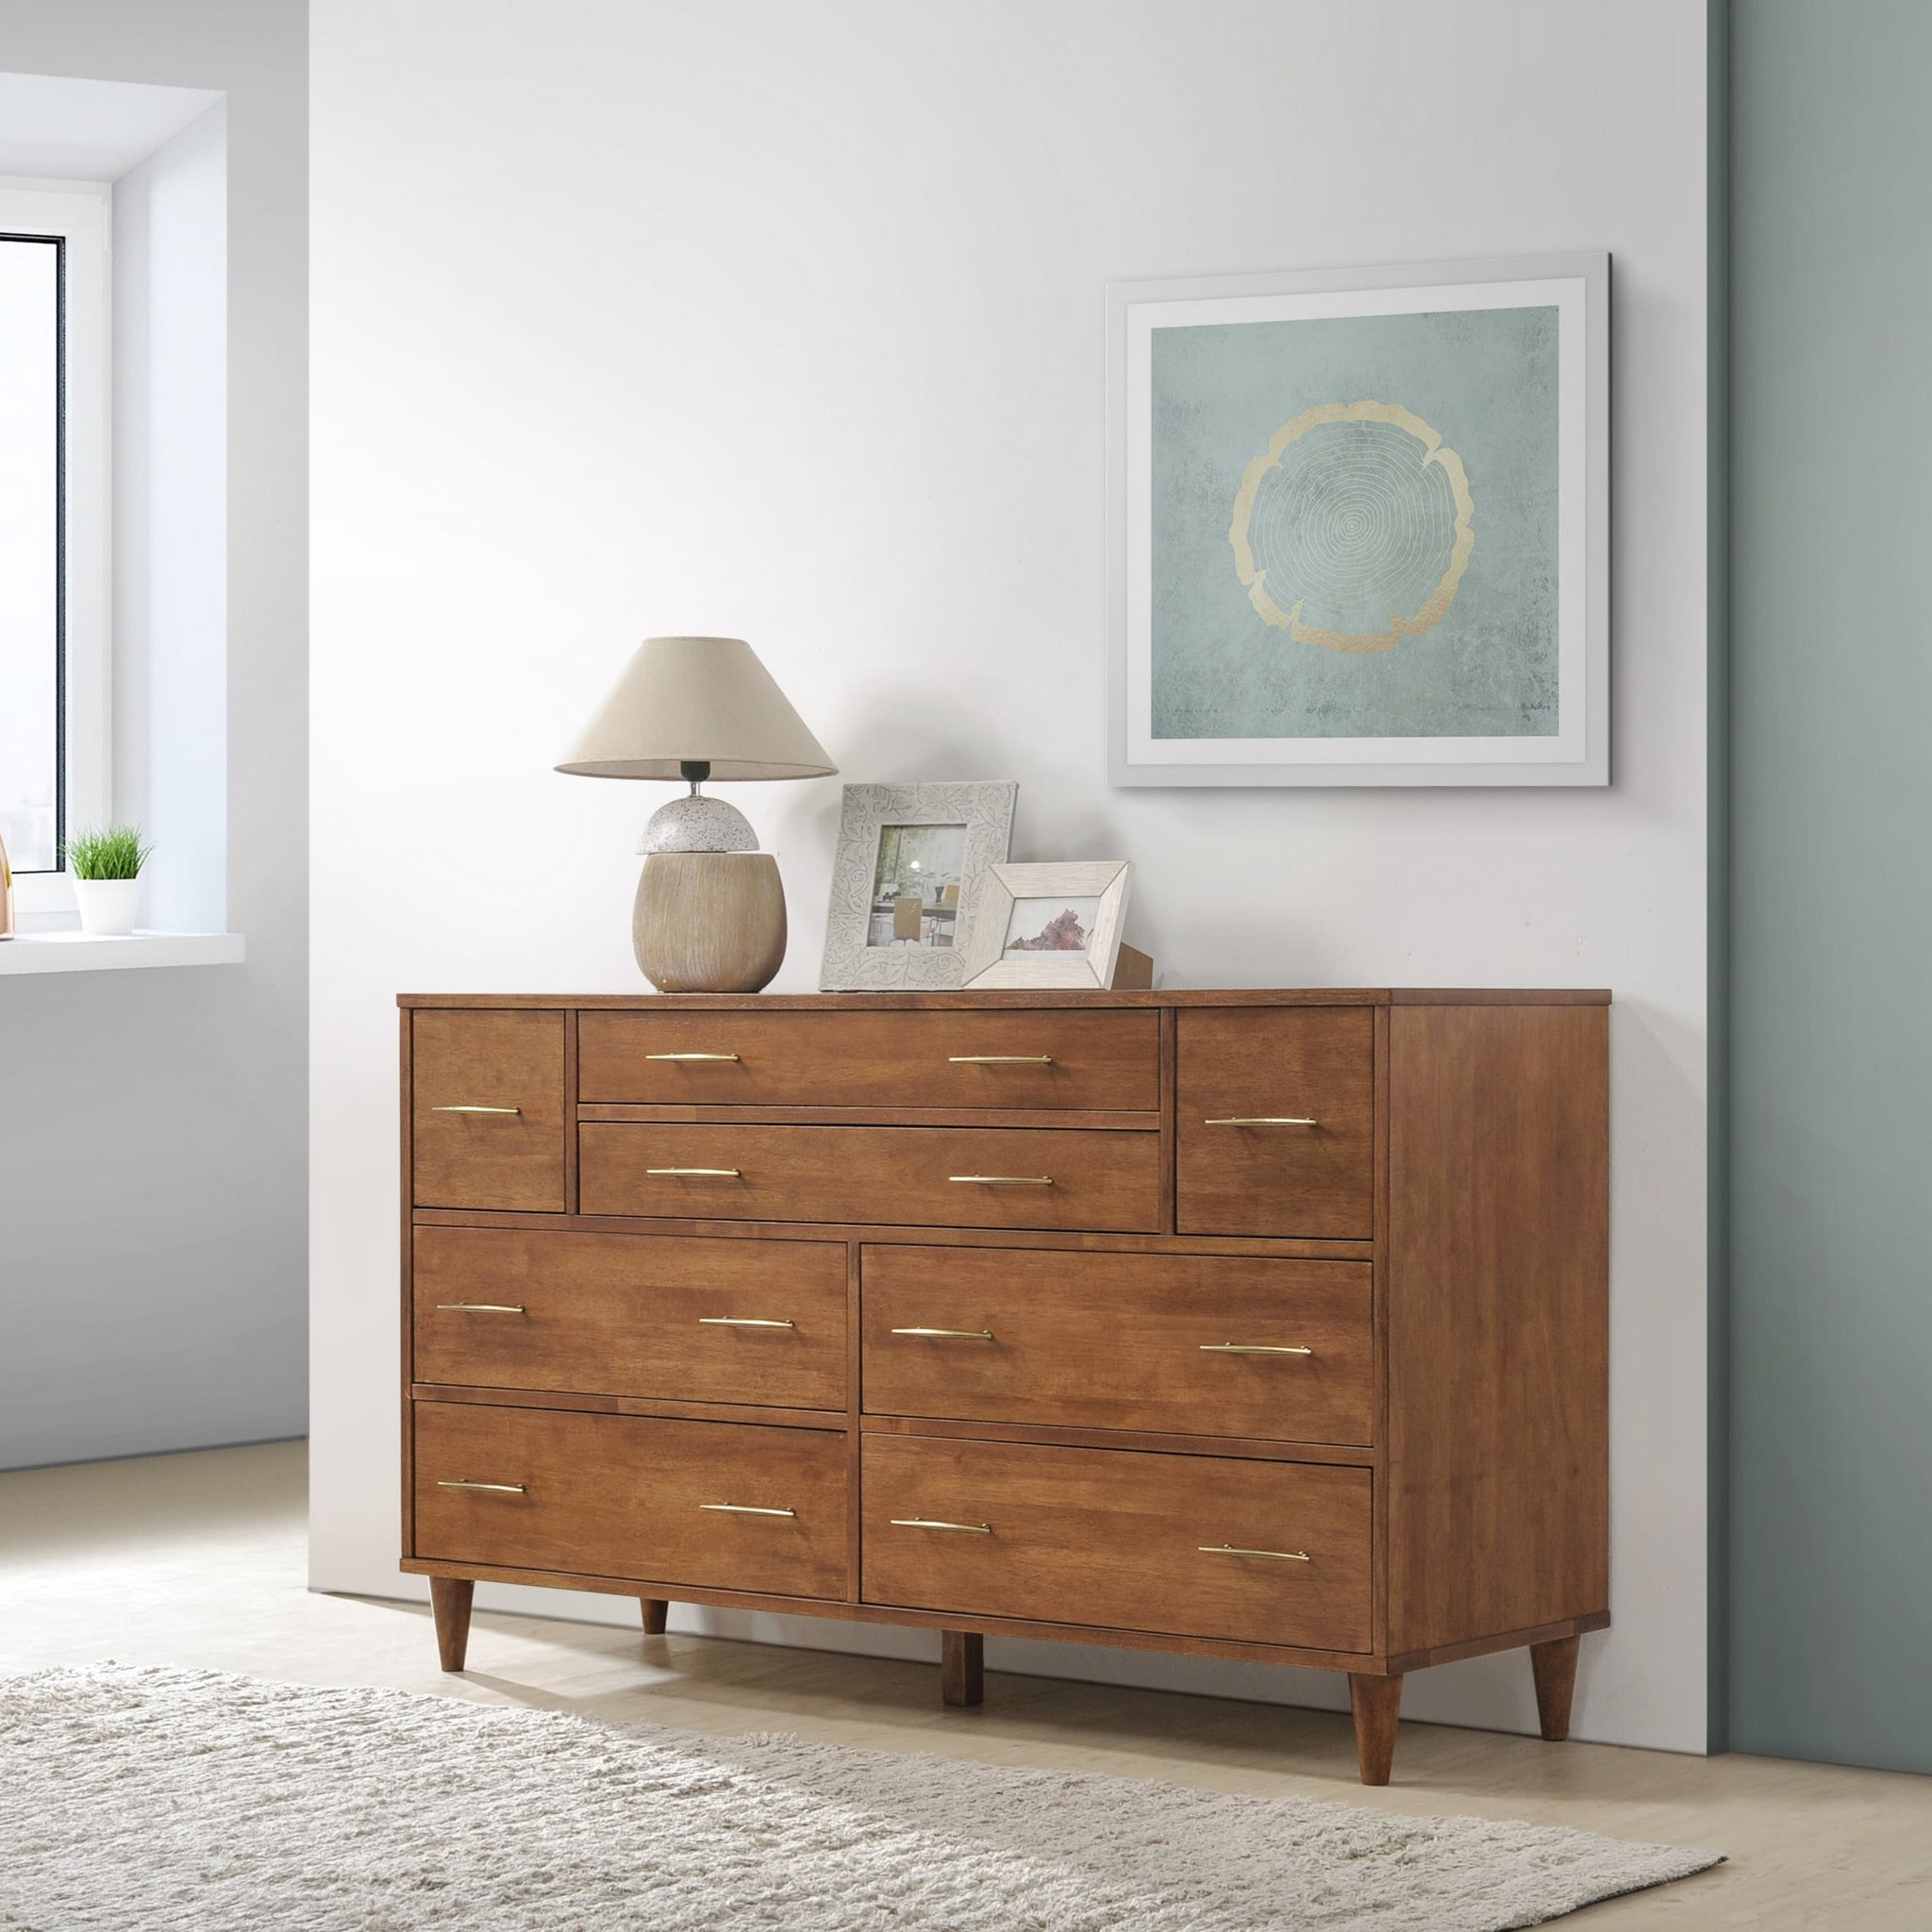 Oak Eight-drawer Dresser